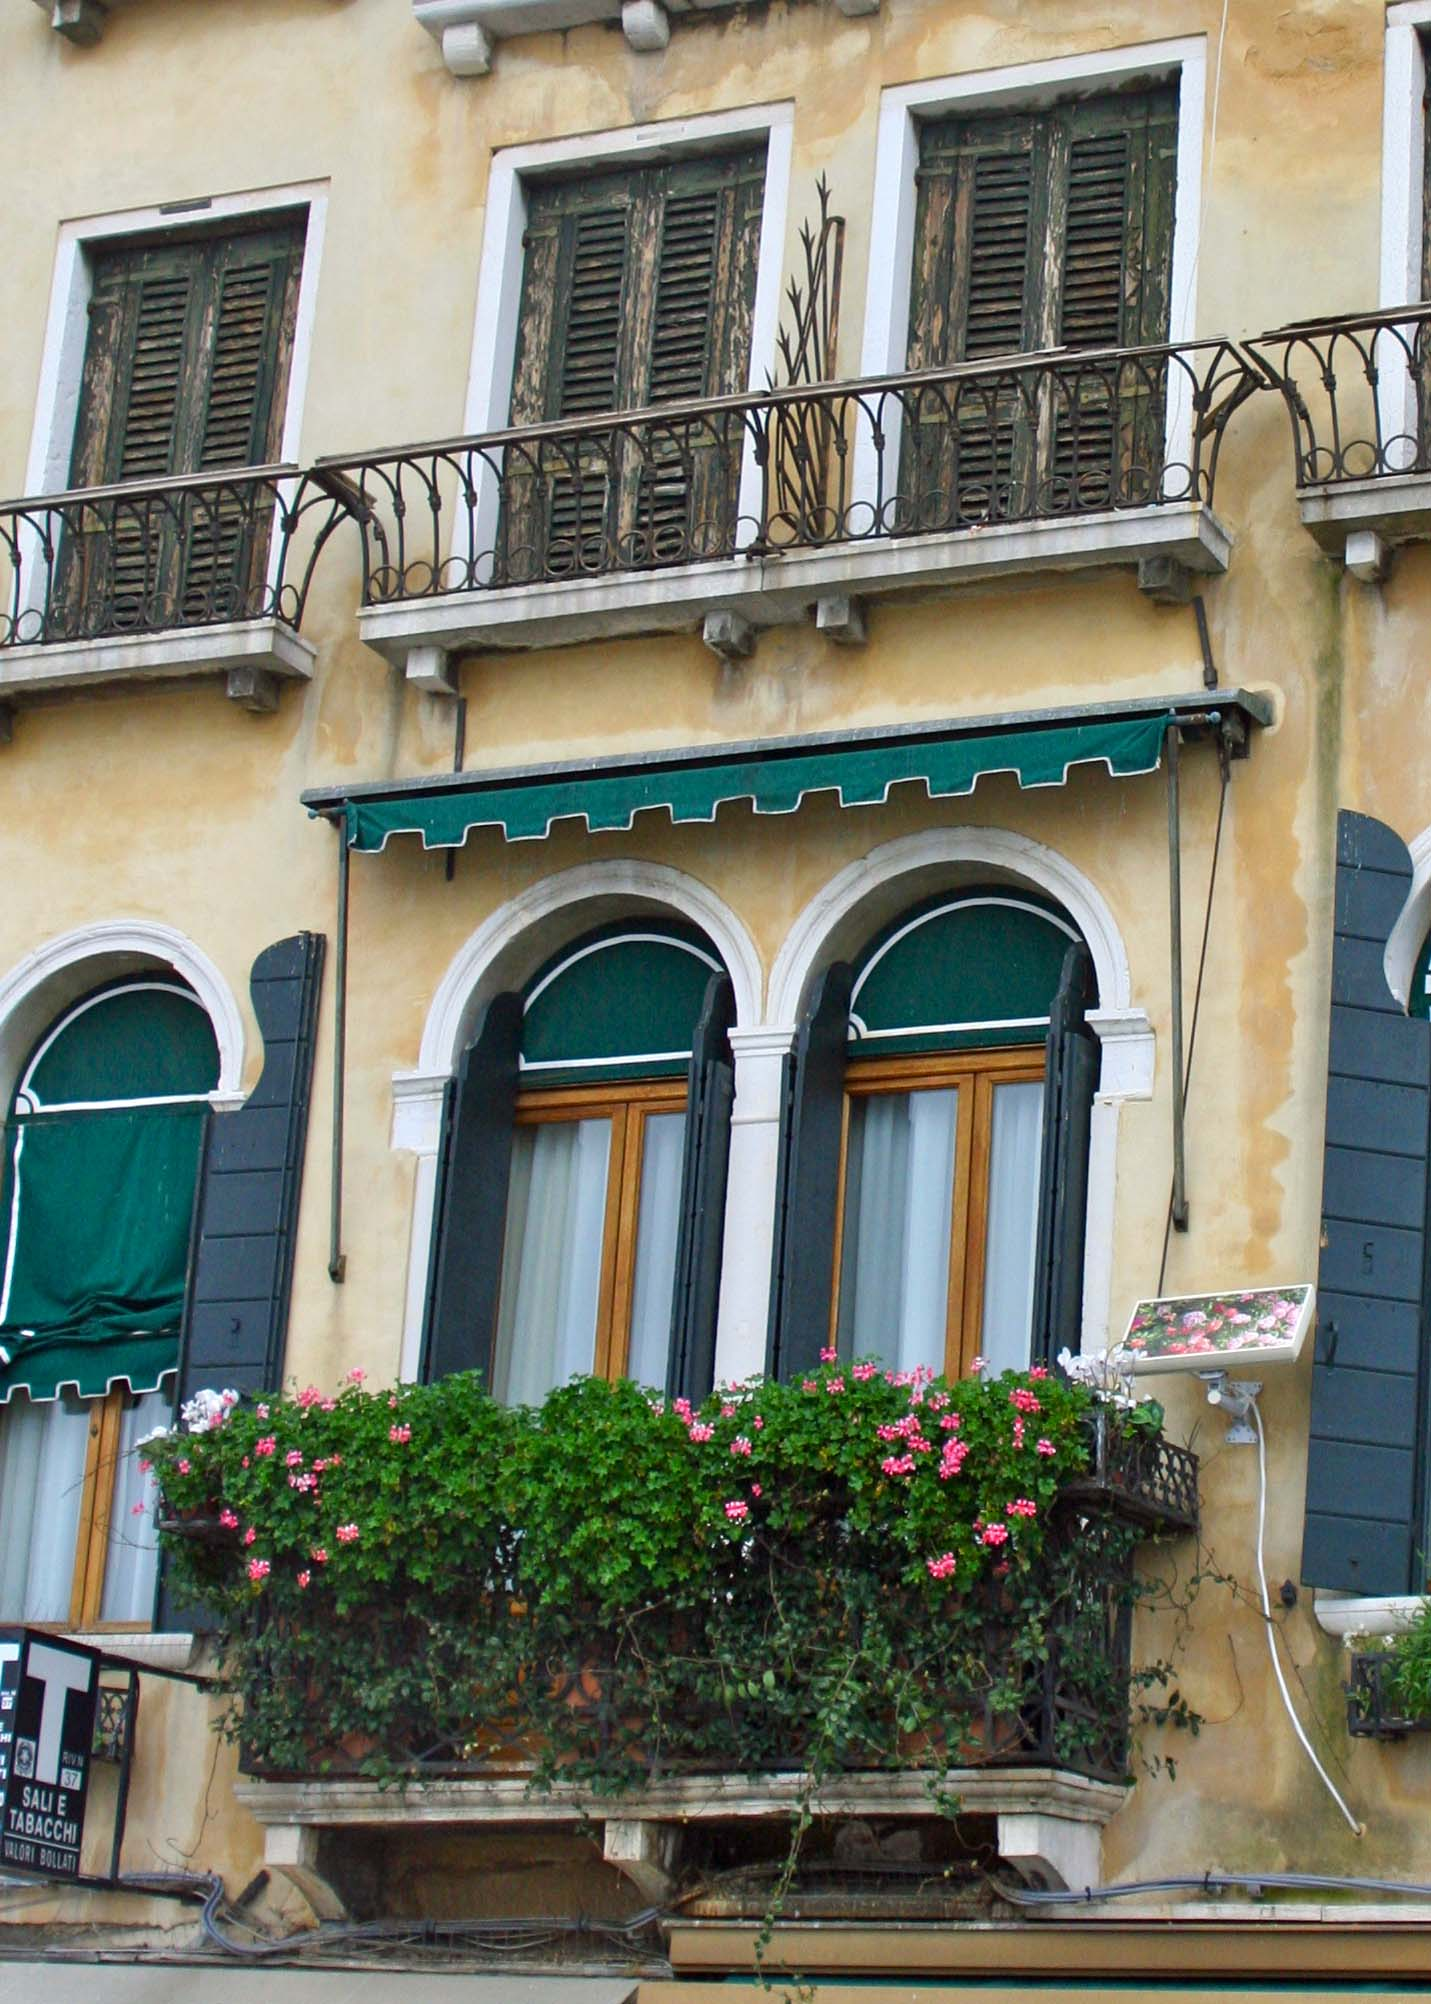 Another example of window flower boxes in Venice. (Photo by Peggy Mekemson.)